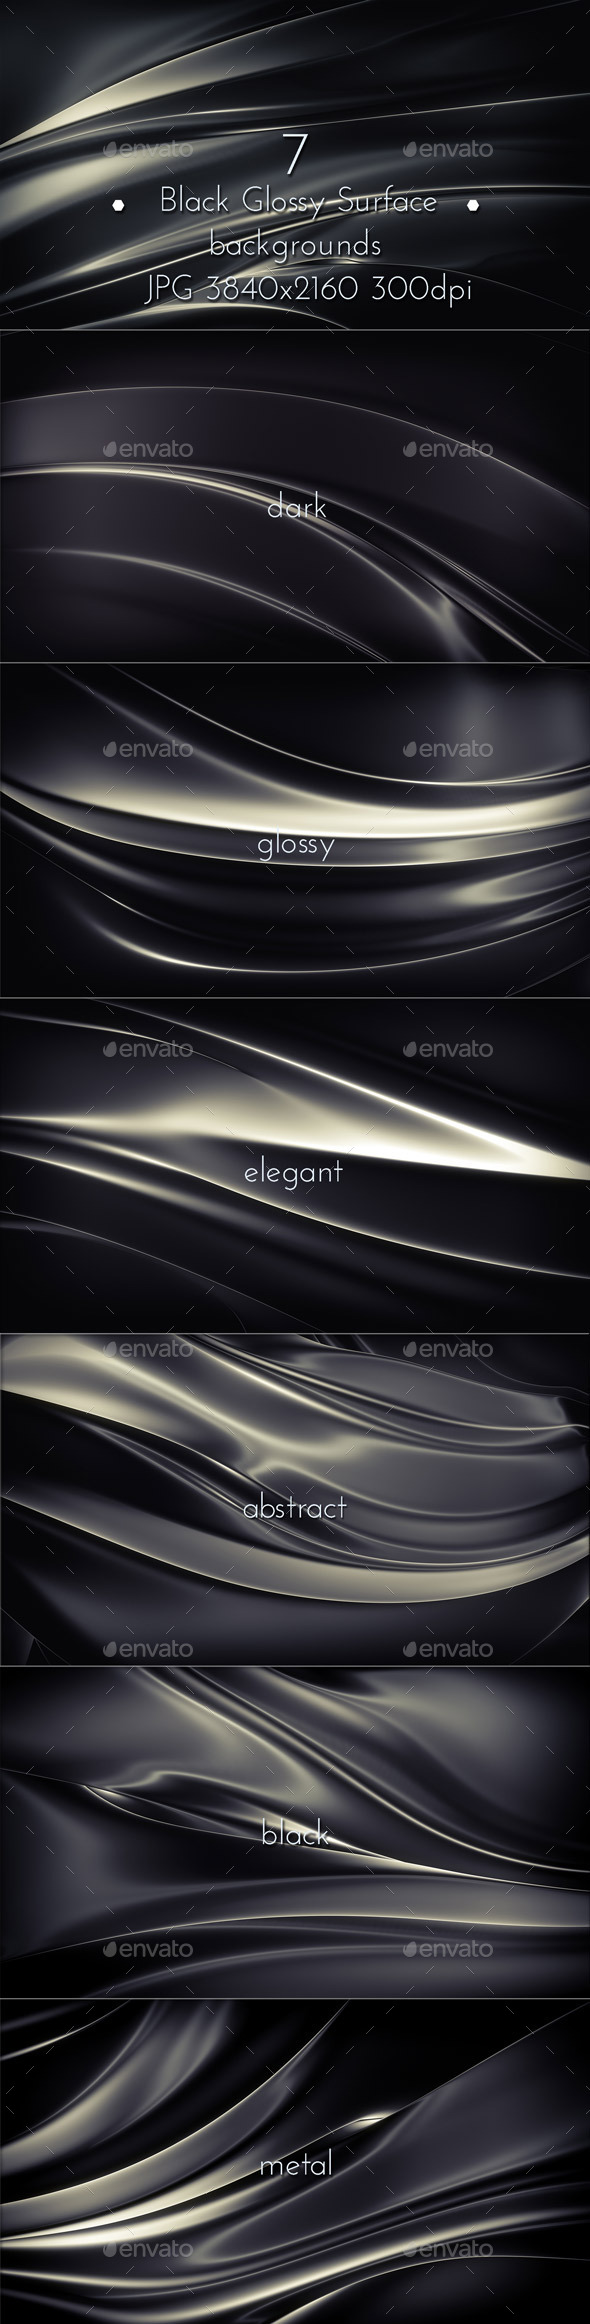 Black Glossy Surface - Abstract Backgrounds